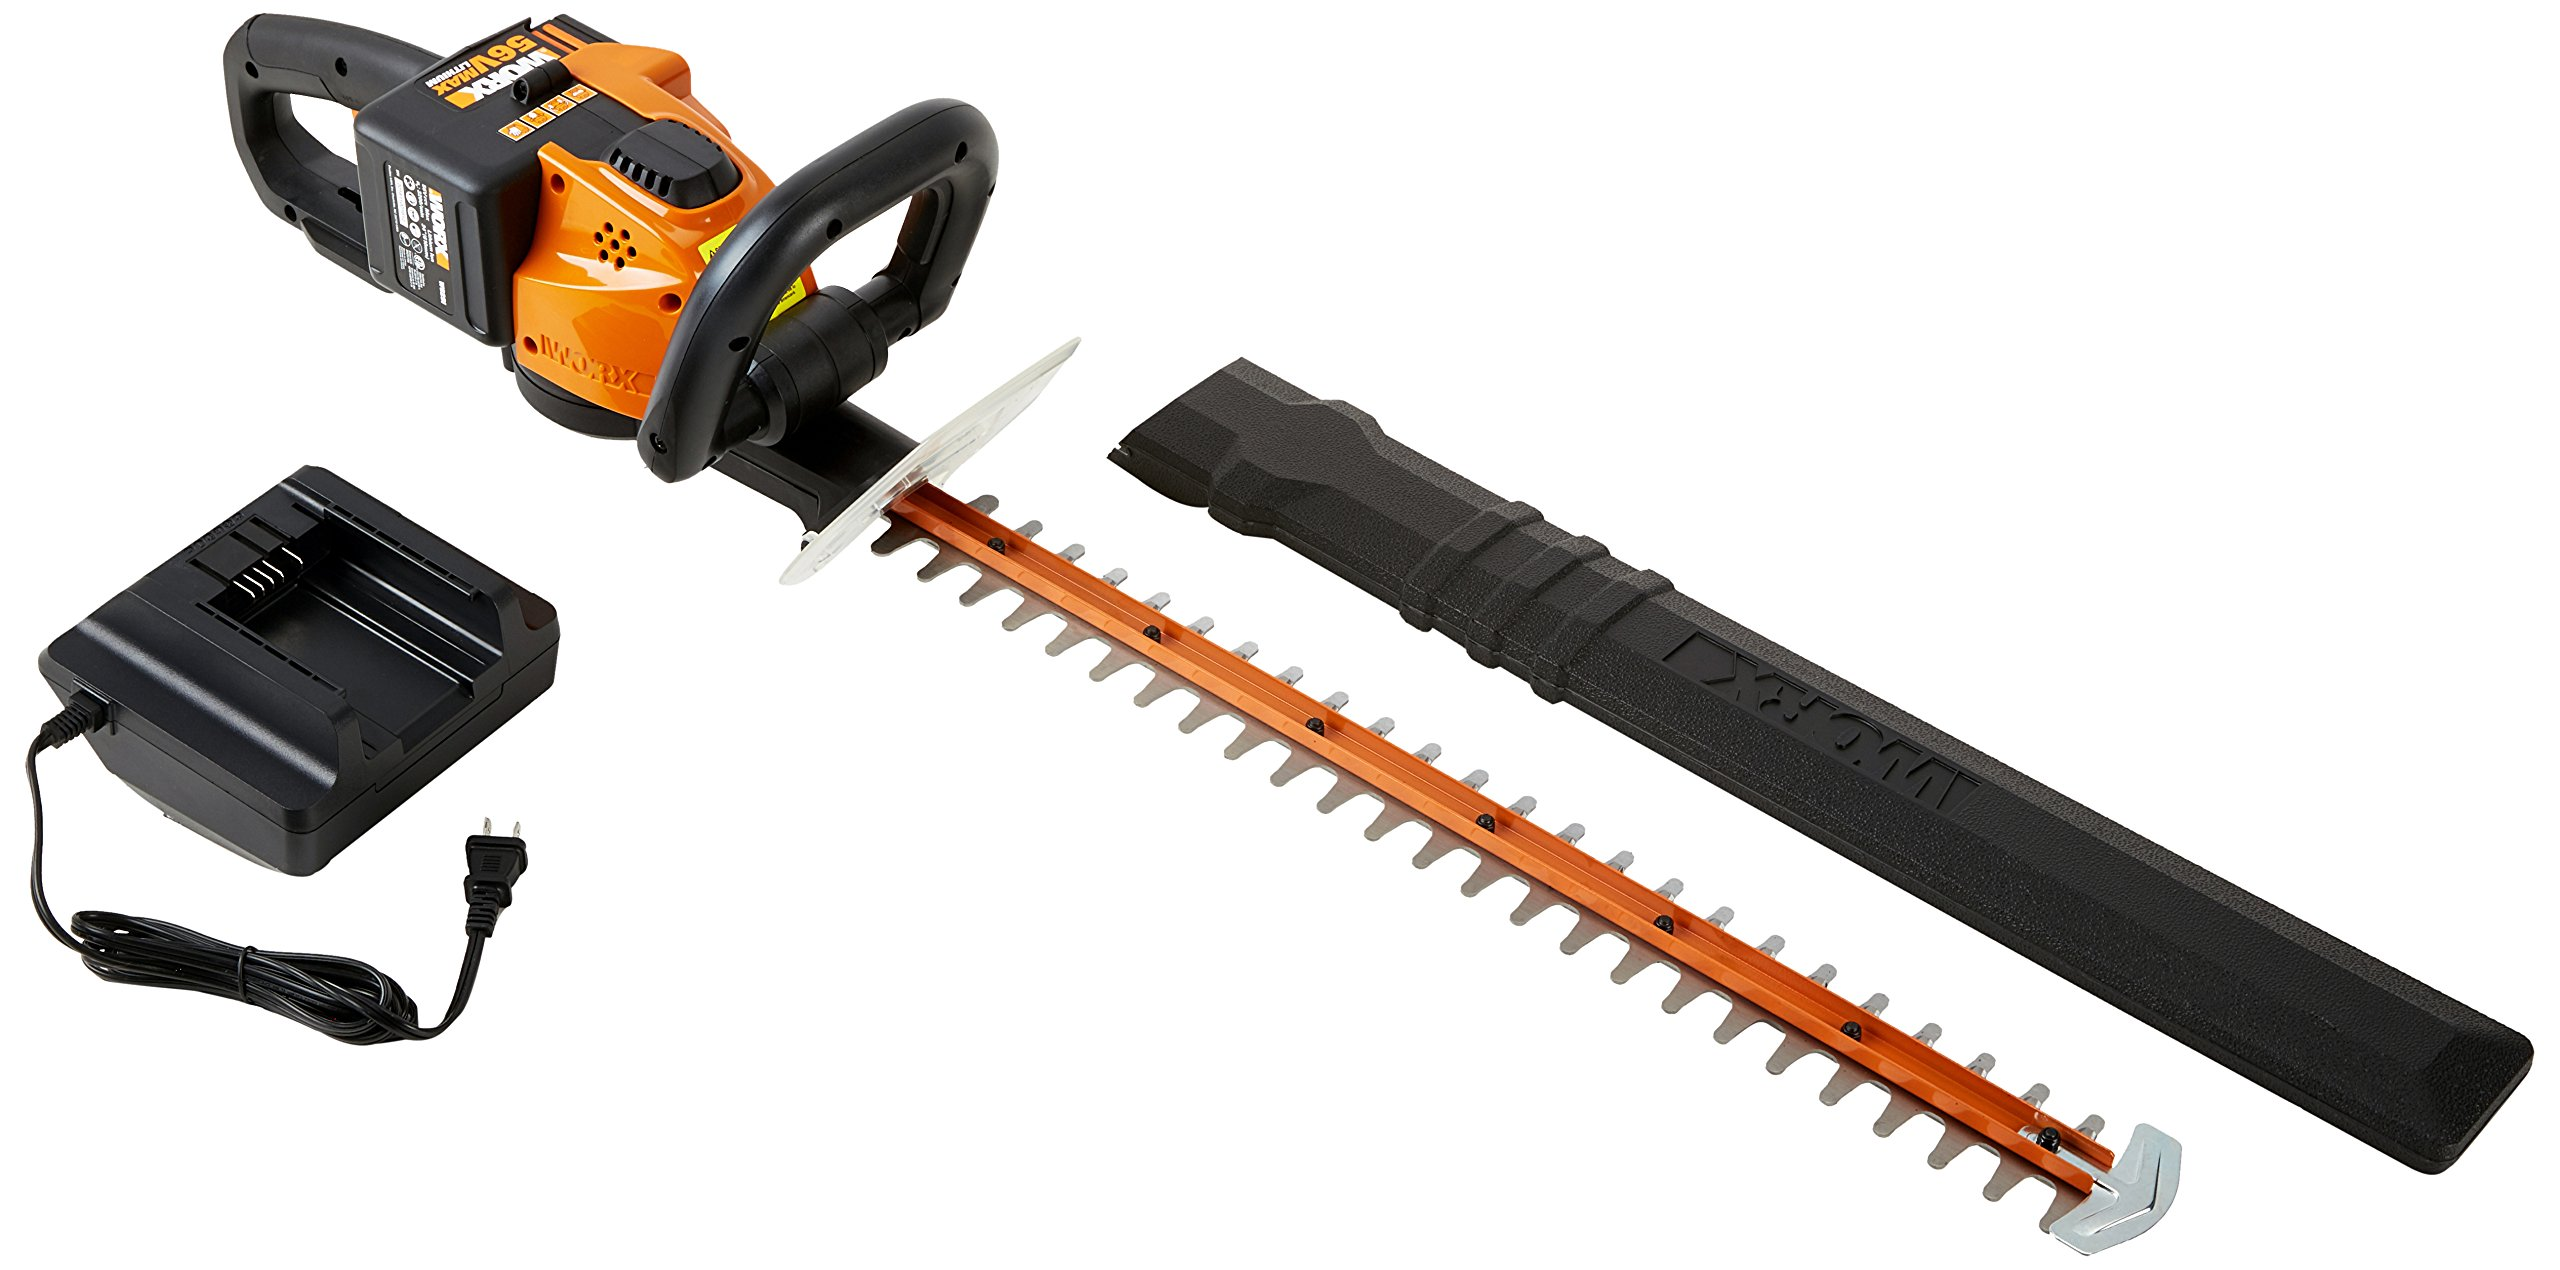 WORX WG291 56V Lithium-Ion Cordless Hedge Trimmer, 24-Inch, Battery and Charger Included by Worx